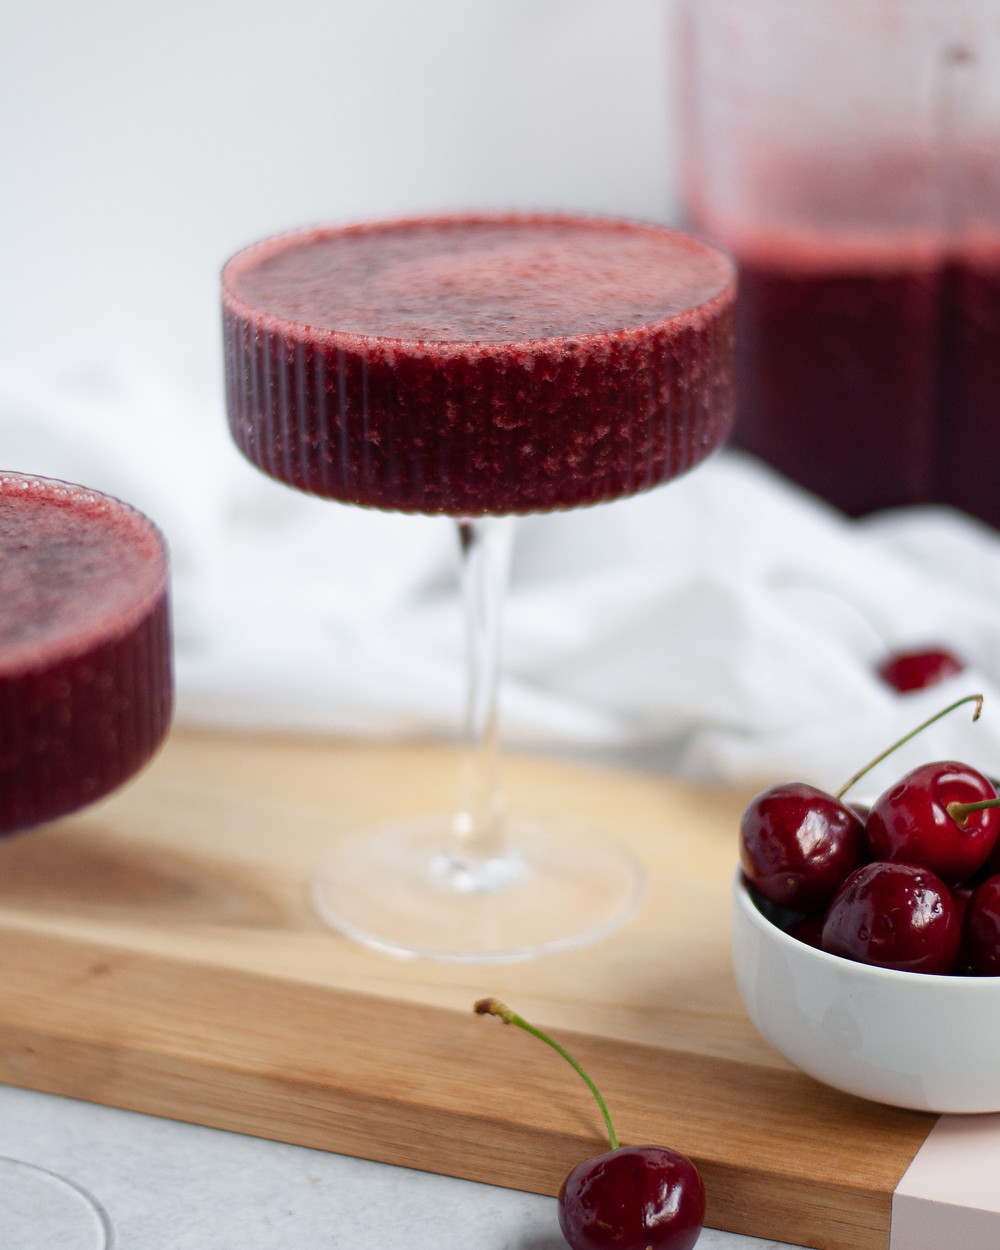 Straight on view of a coupe glass filled with cherry wine slushies. Another glass filled is in the foreground peaking into the frame, there is a bowl of cherries, and the pitcher of frose is in the background.